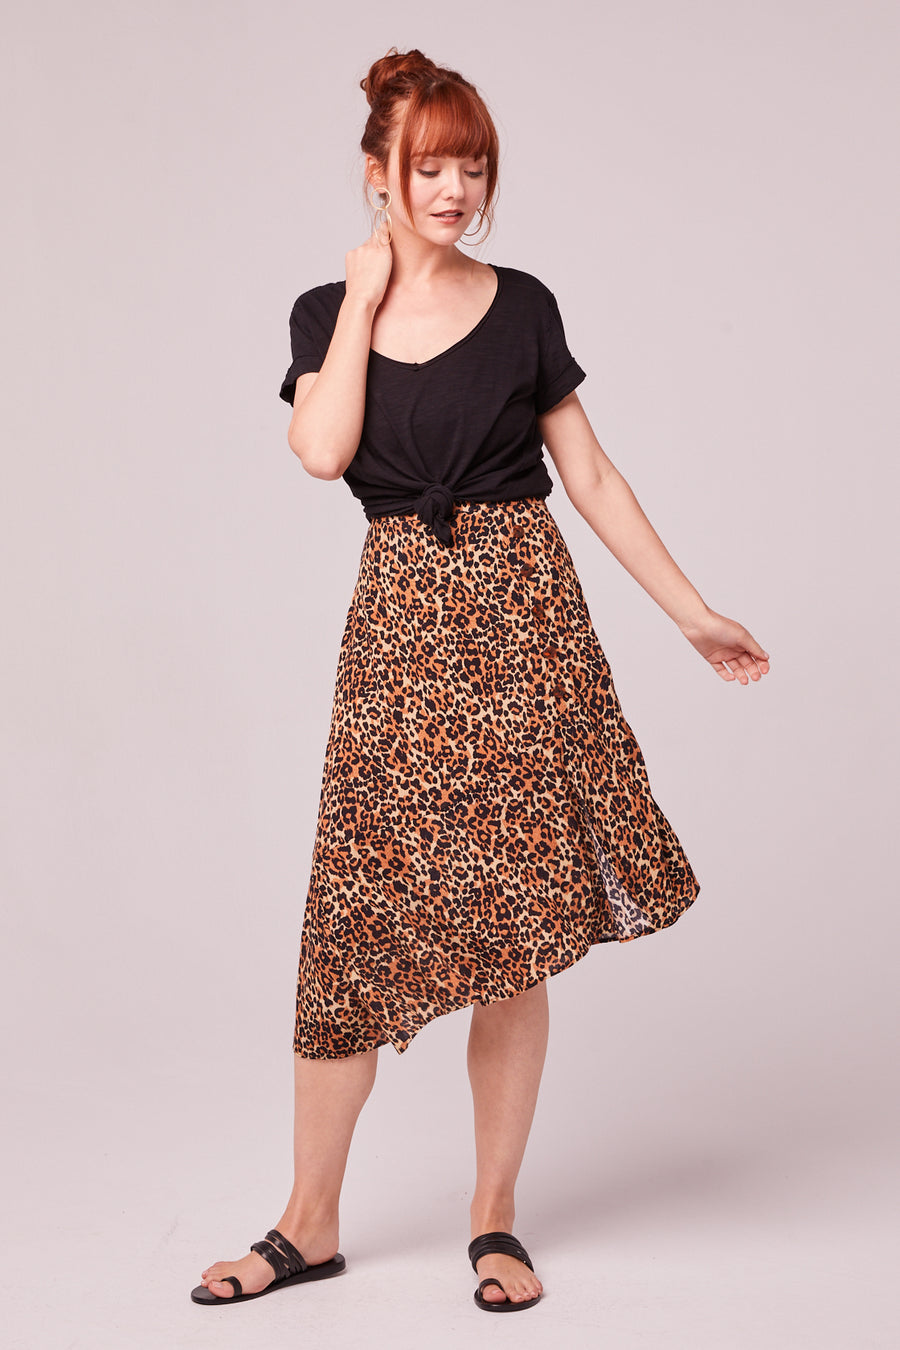 Bronzite Animal Print Skirt Lifestyle